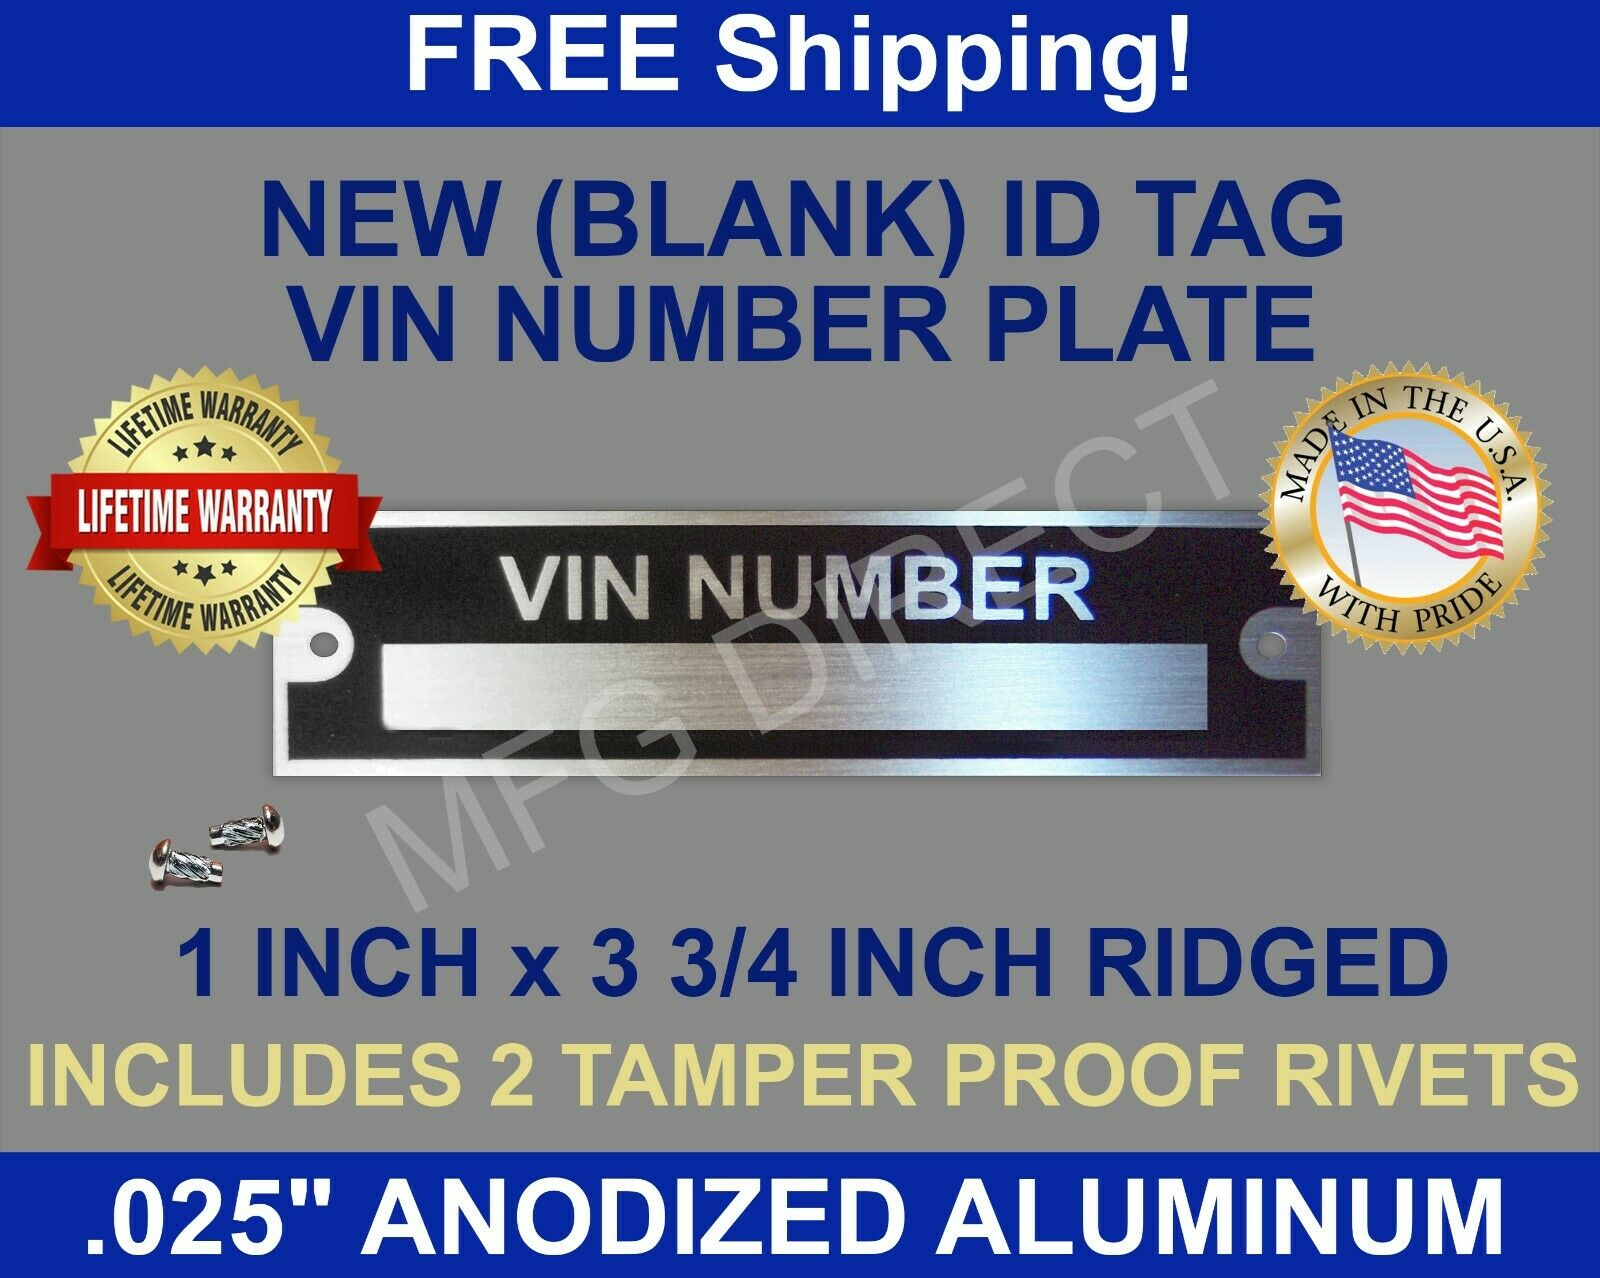 New Blank Vin Serial Number Plate Identification Vehicle Id Tag Free 1955 Ford F100 Location 1 Of 2only 3 Available